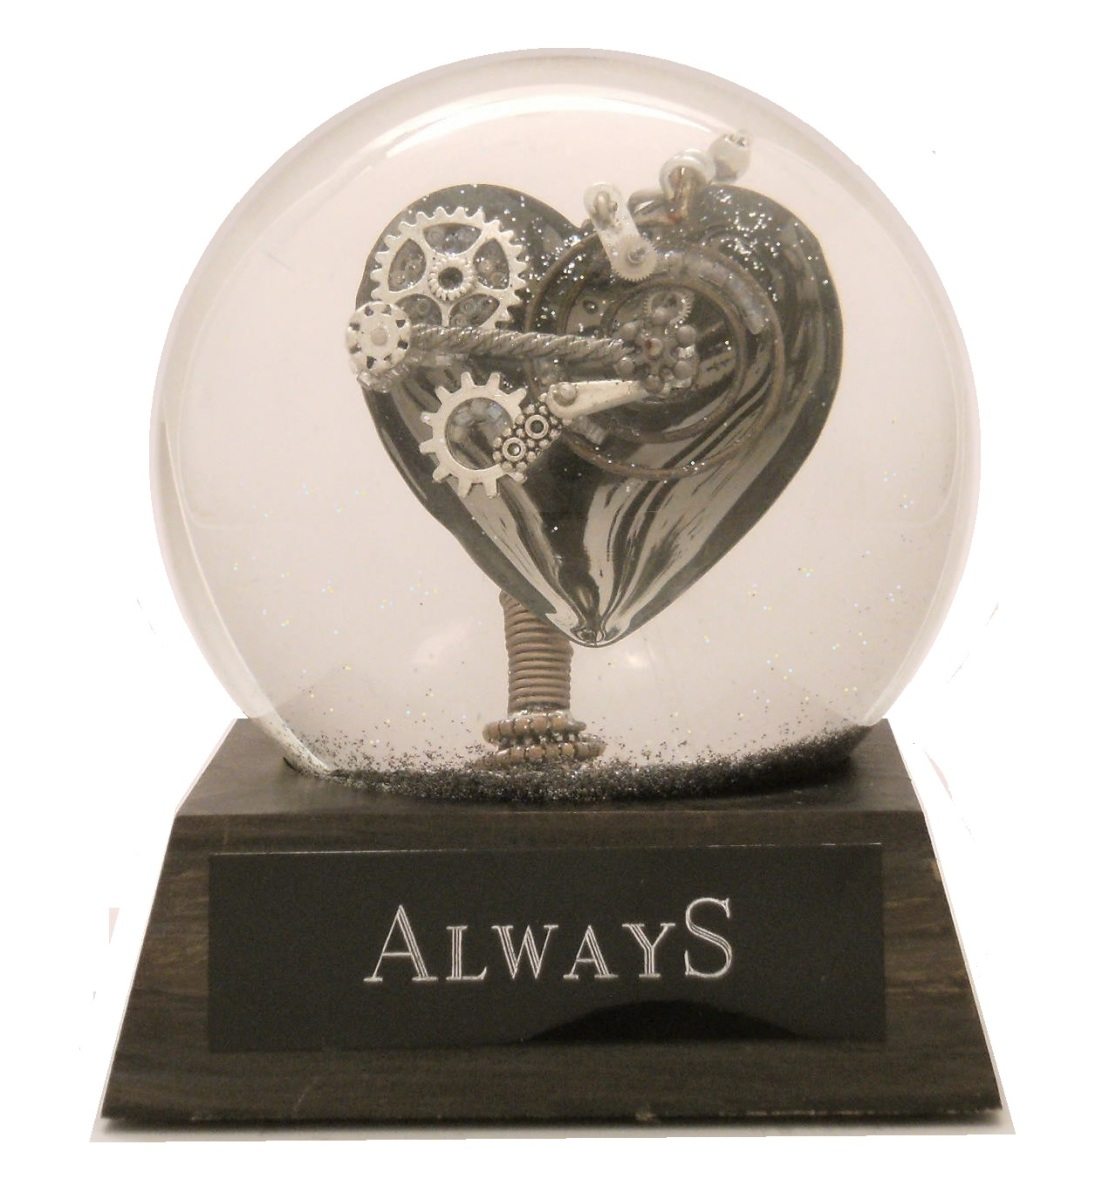 Always Snow Globe Camryn Forrest Designs Denver Colorado